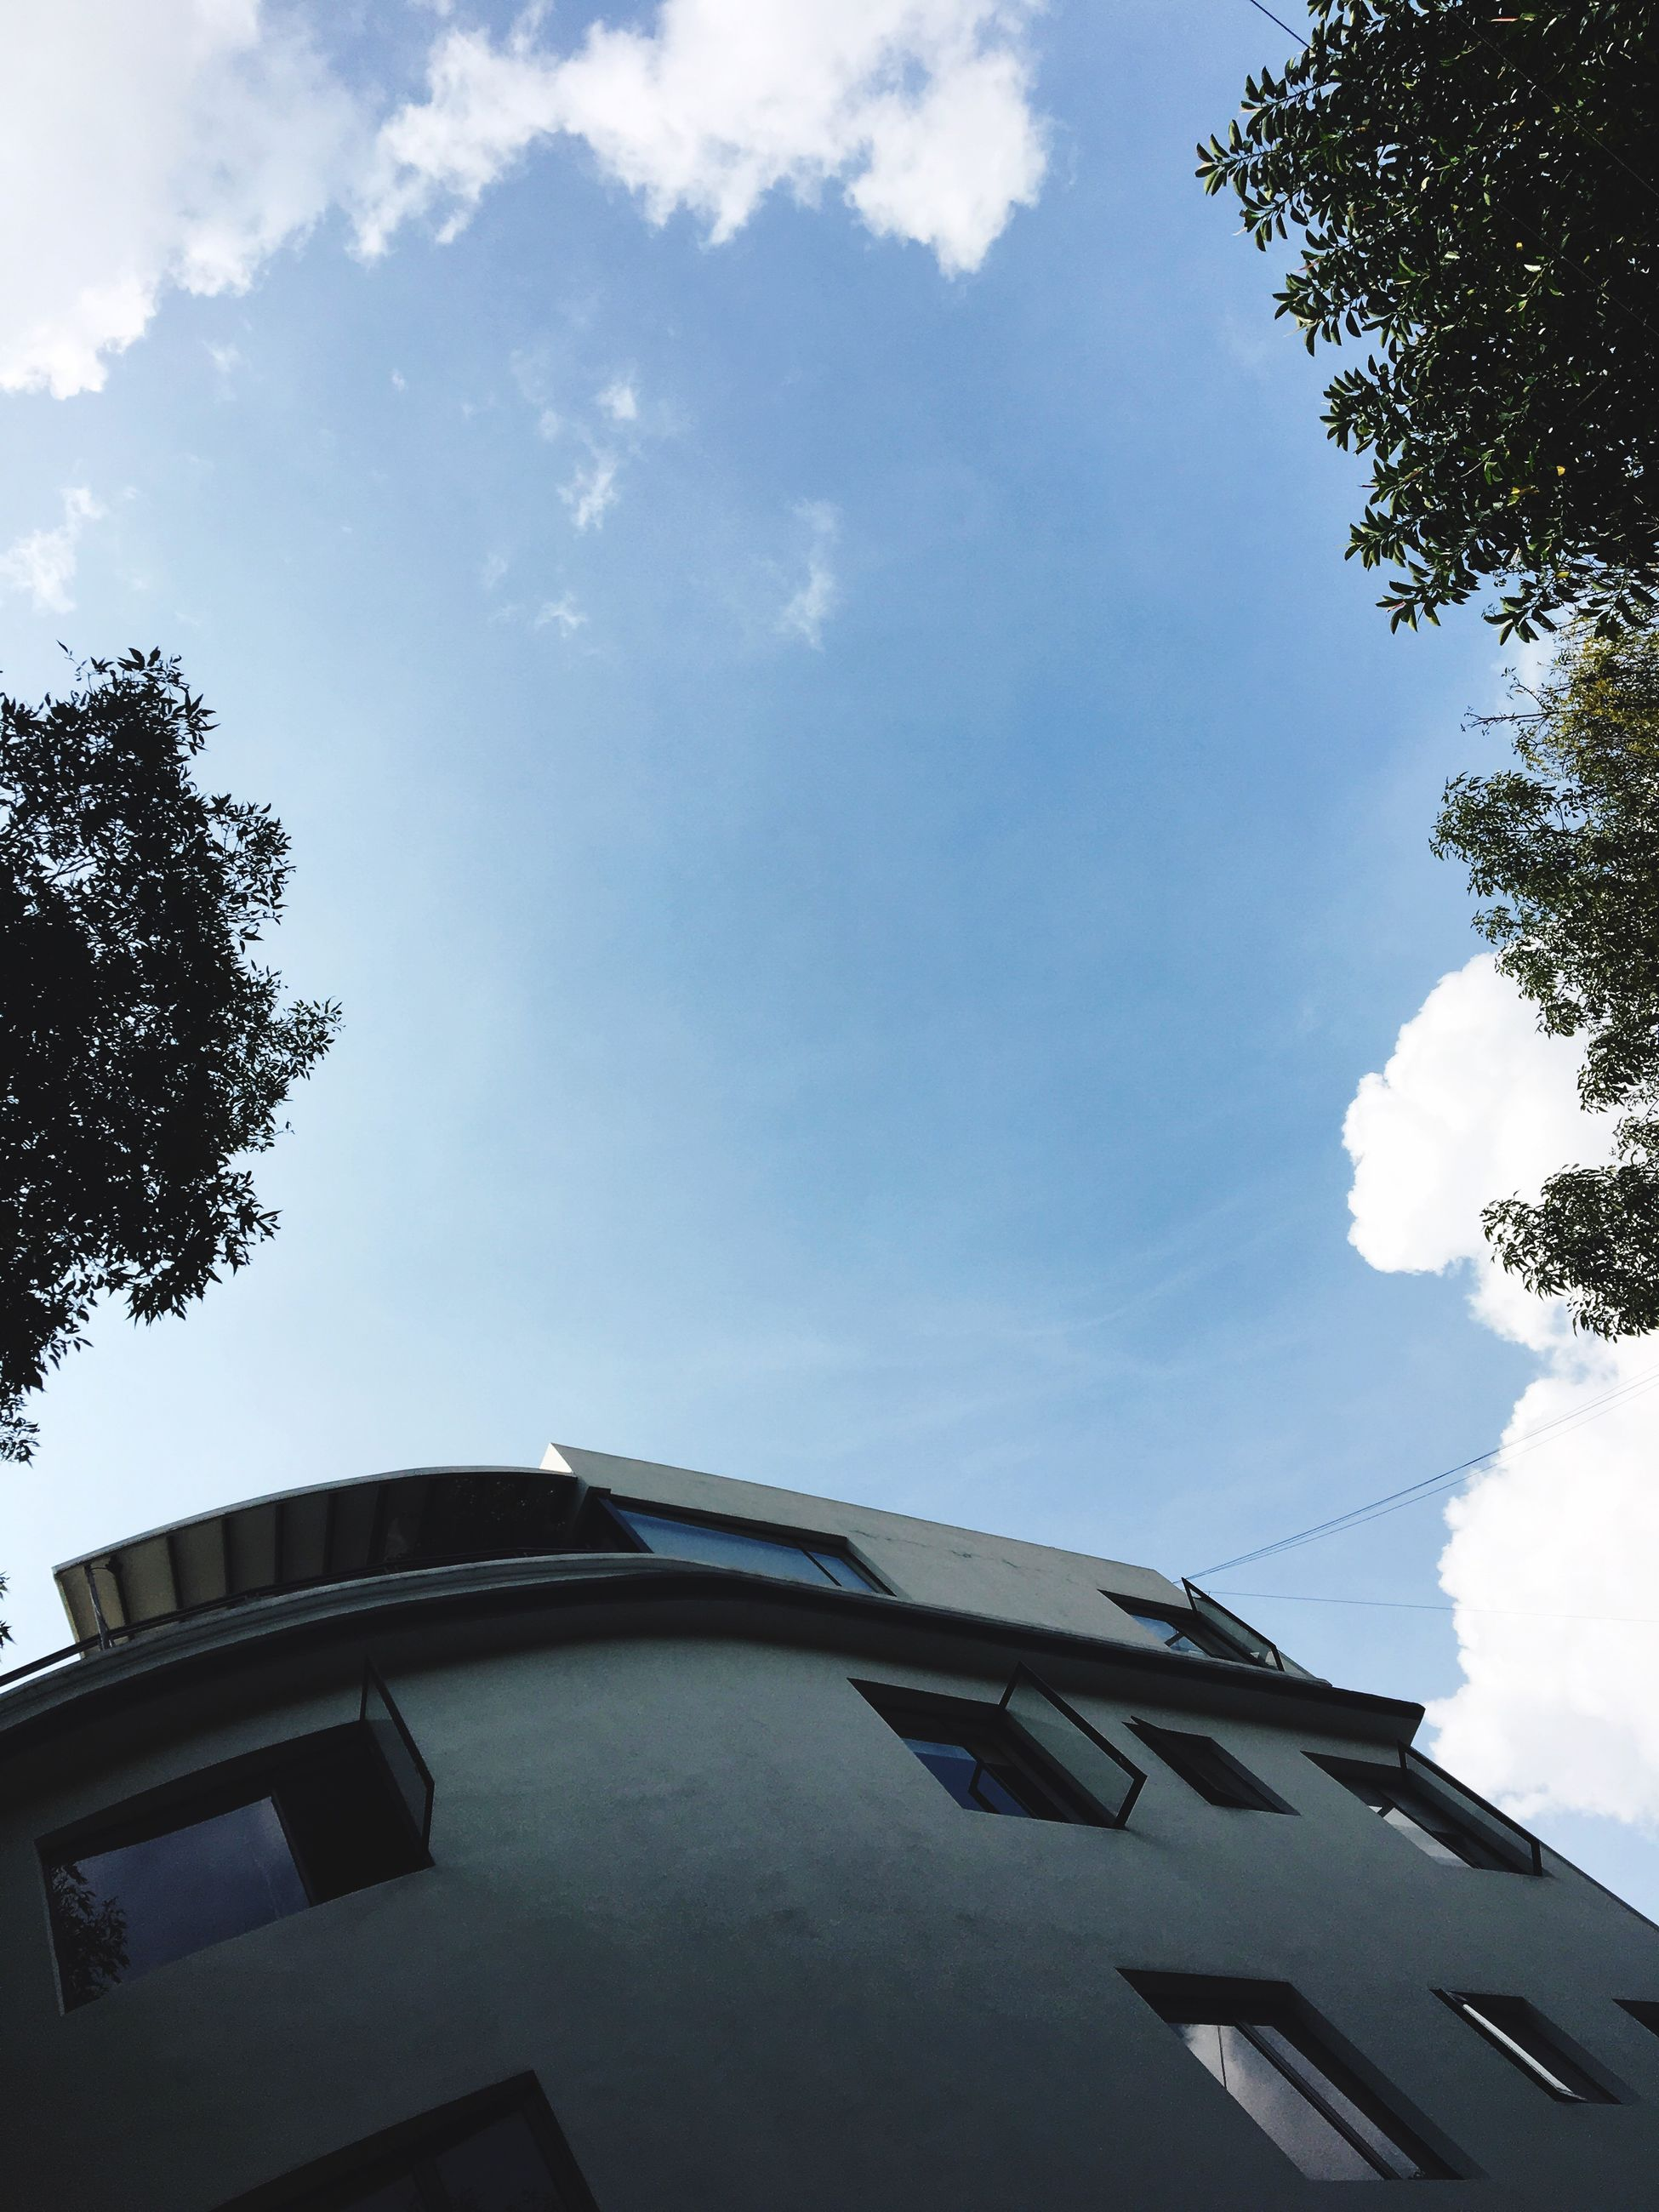 low angle view, architecture, building exterior, tree, built structure, sky, directly below, blue, branch, day, cloud - sky, outdoors, no people, high section